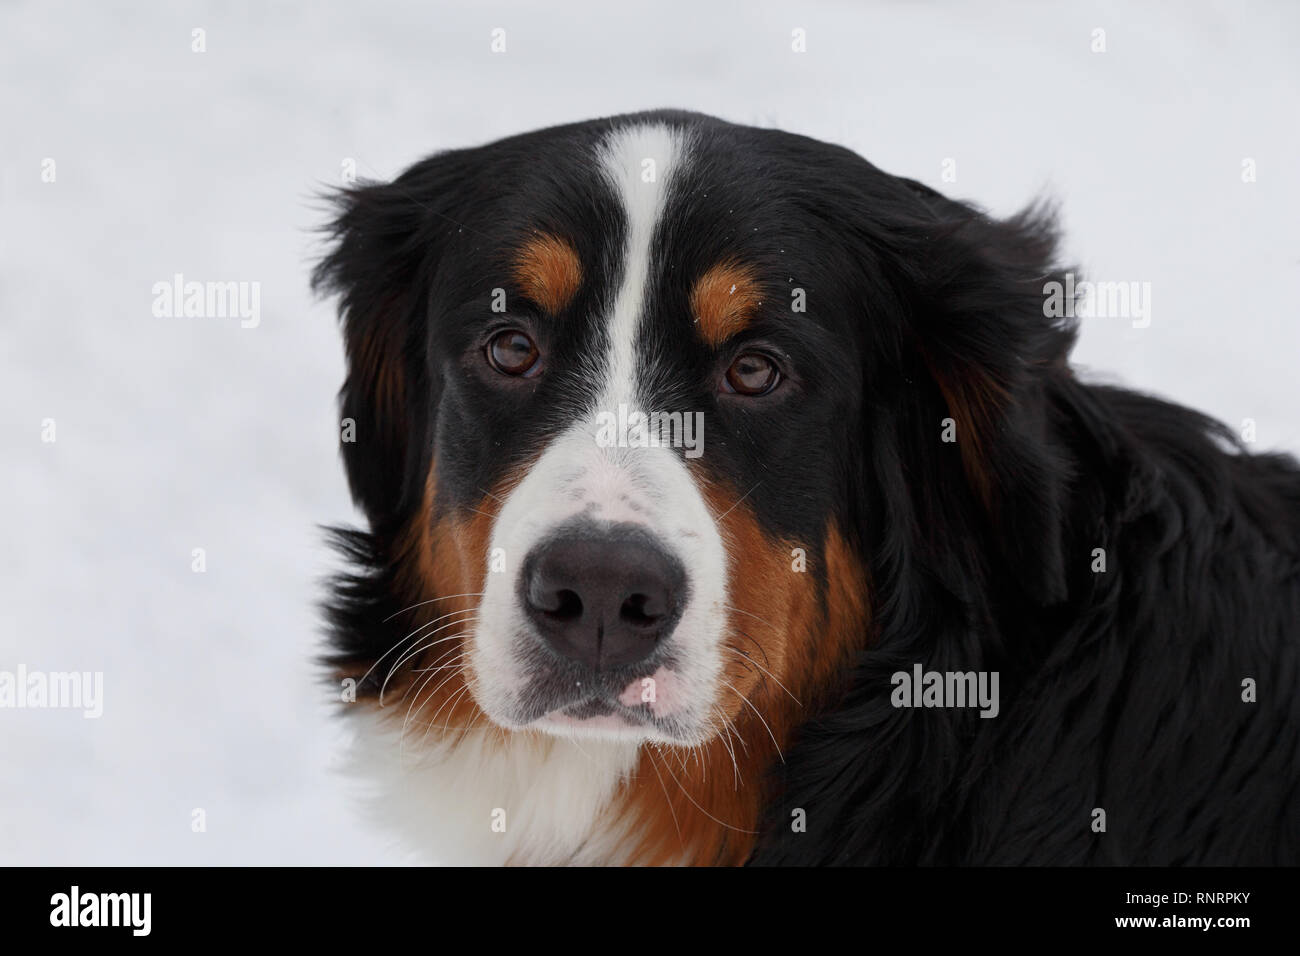 Cute Puppy Berner Sennenhund Is Looking At The Camera